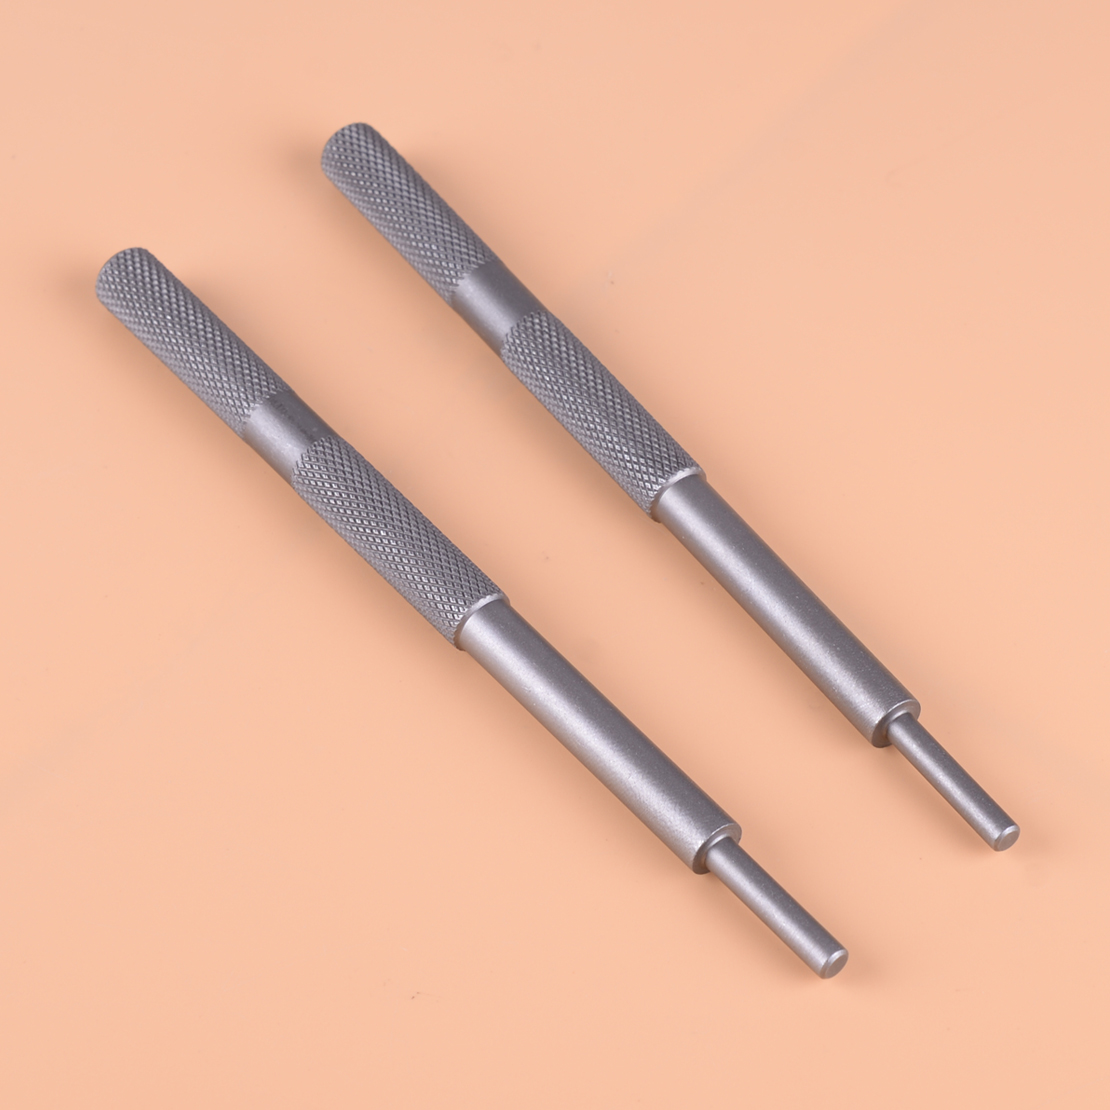 DWCX 2PCS Dark Grey Metal Motorcycle Valve Guide Remover Grinding Stick Lapping Tool